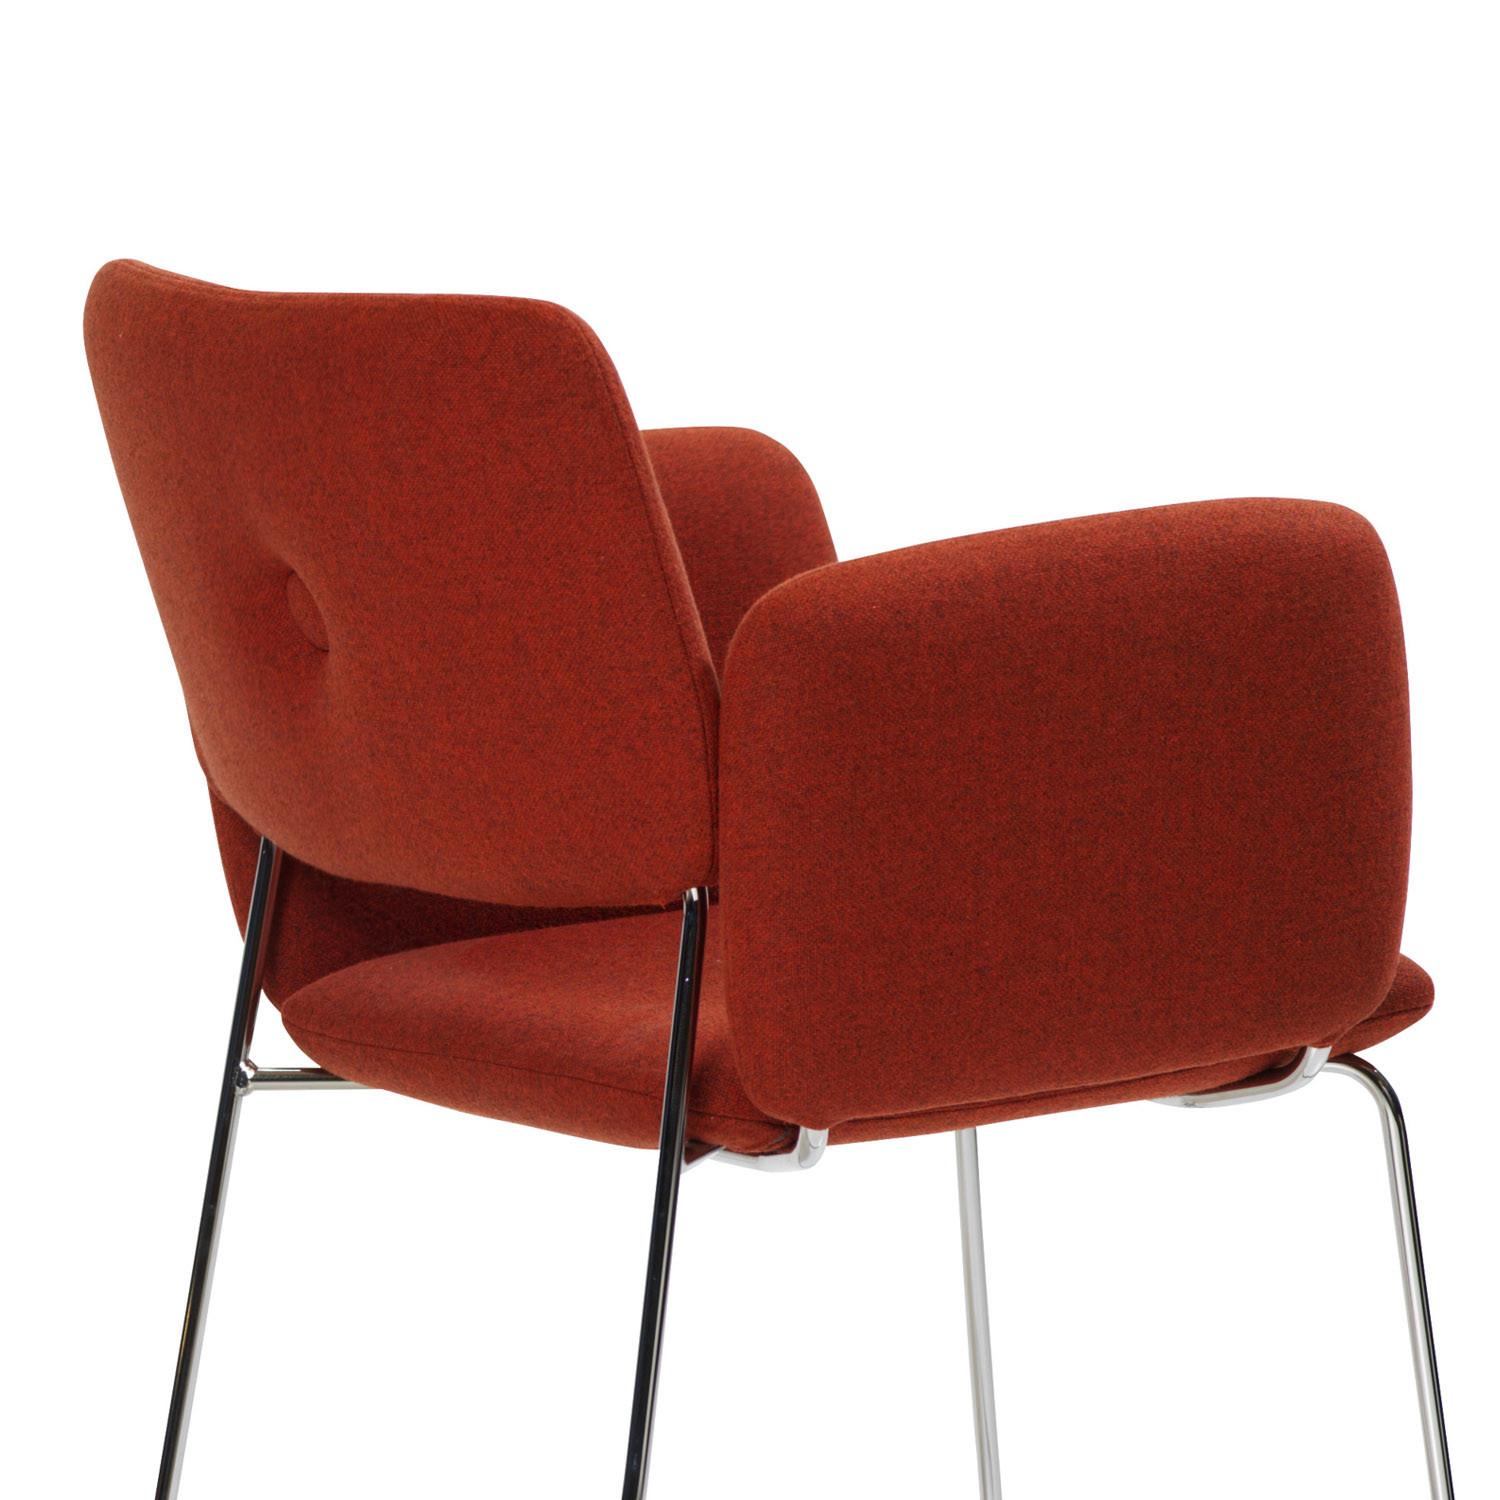 Dundra Armchair S70AS from Bla Station